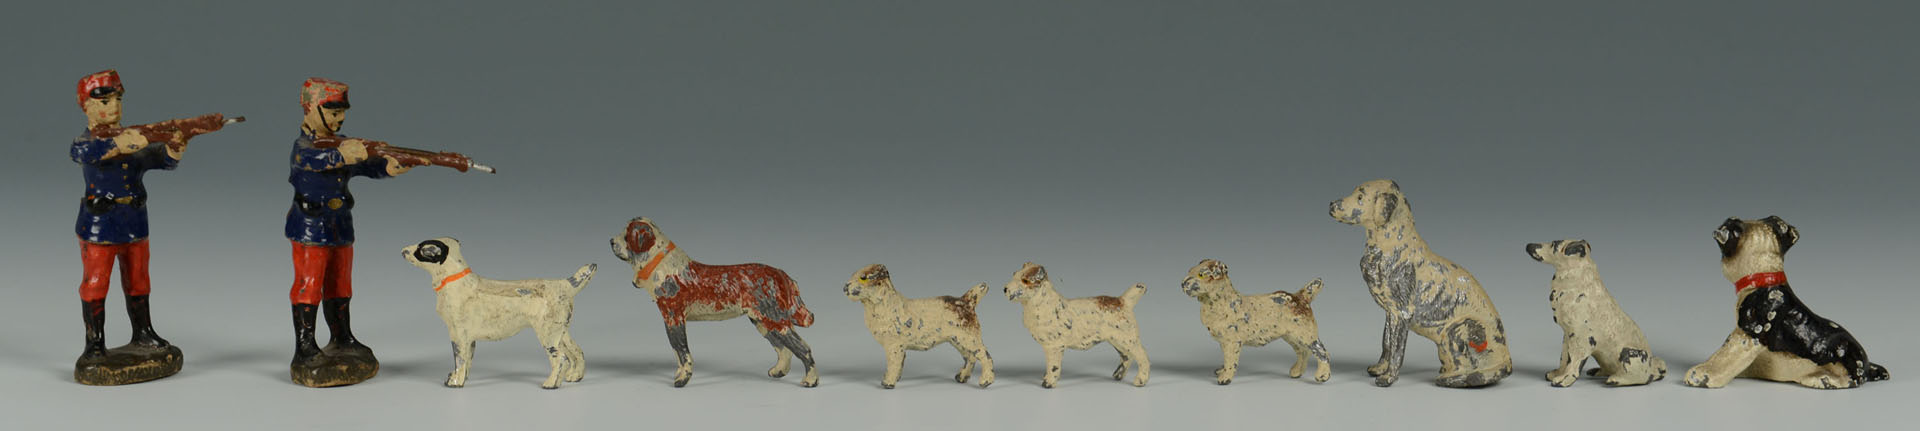 Grouping of Miniature Metal Toy Soldiers and dogs